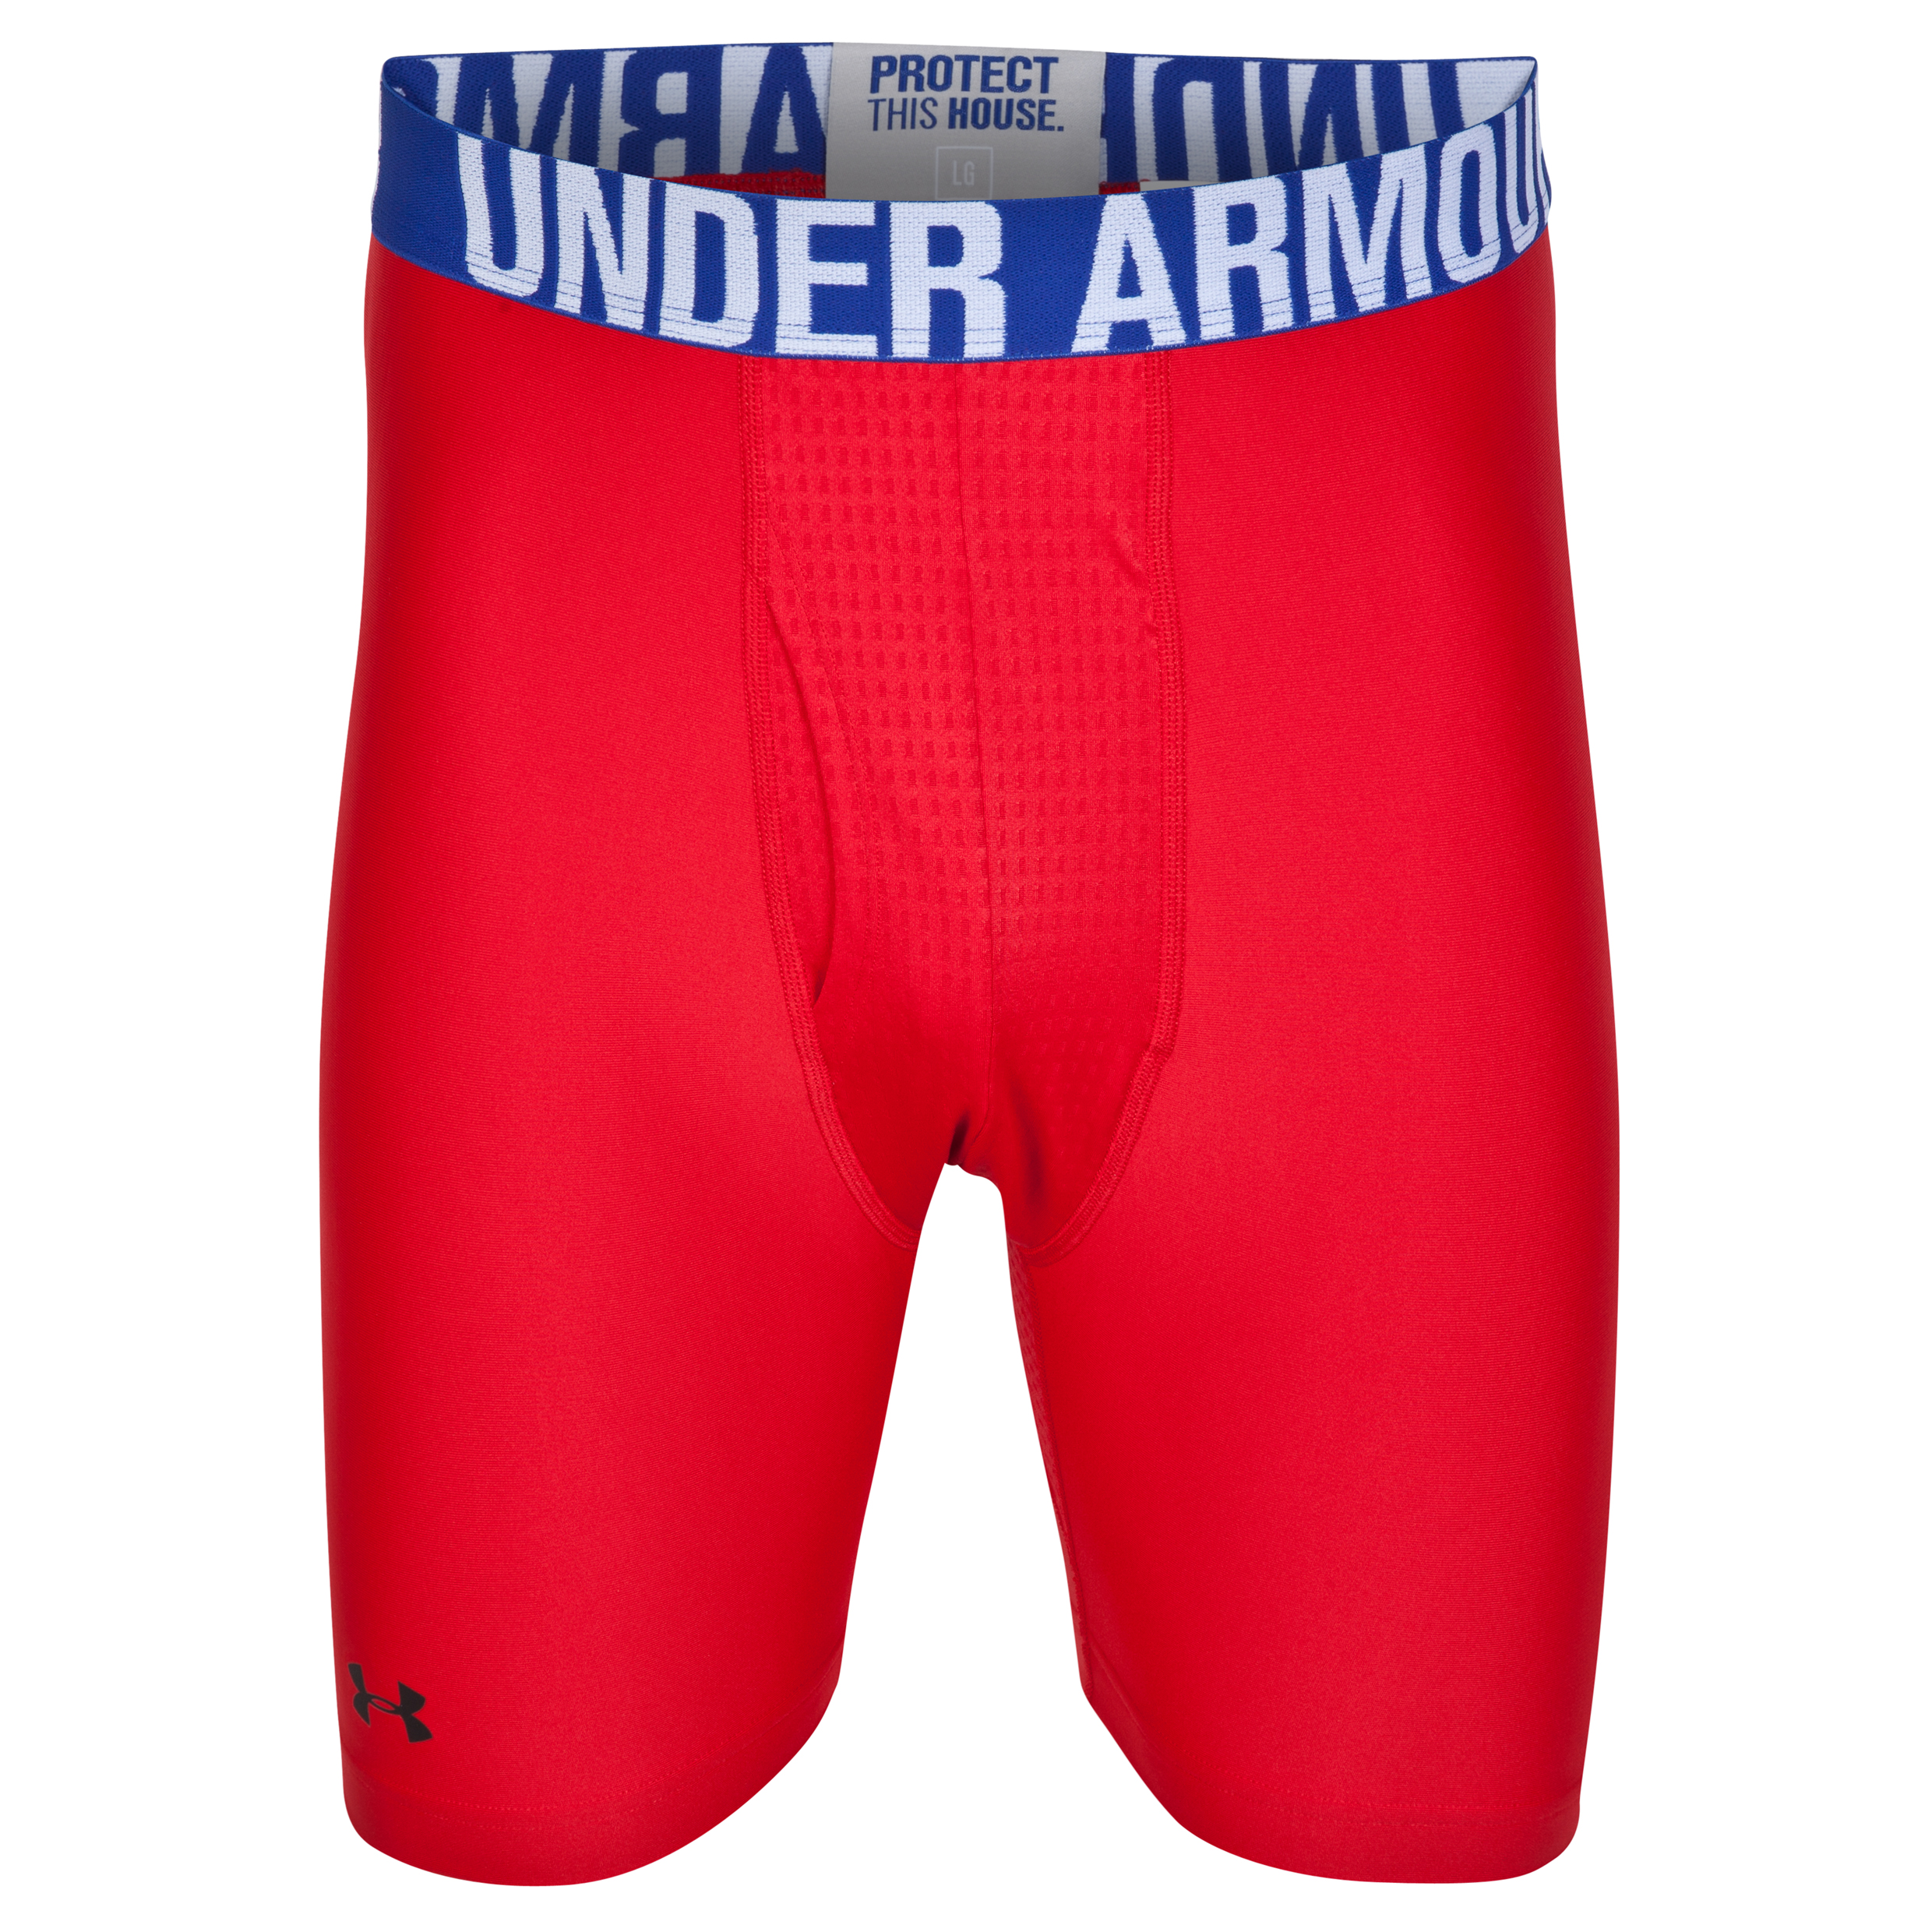 Under Armour Evo Coldgear base layer short Red